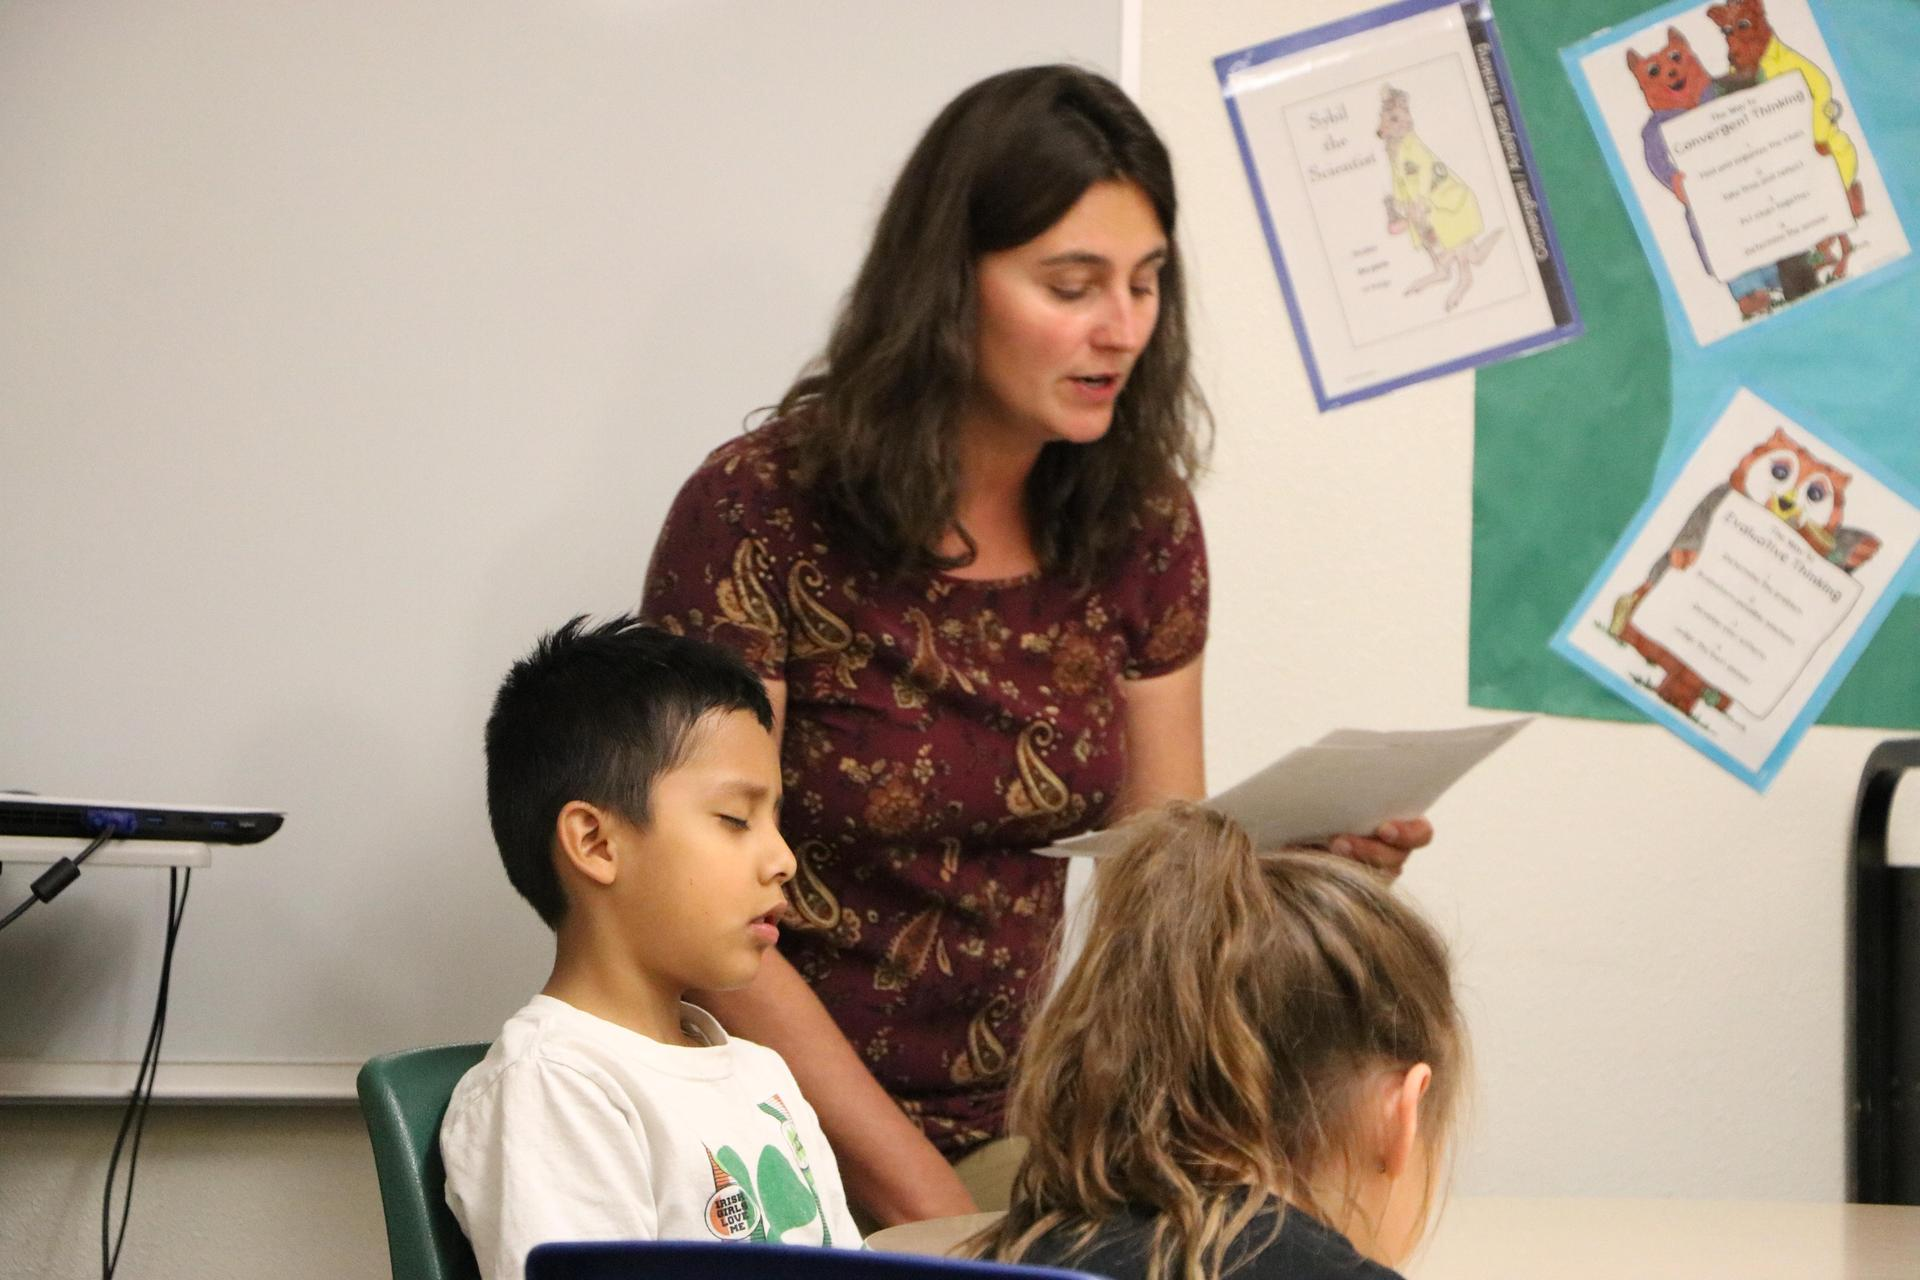 A GT Facilitator reads to a small group of students.